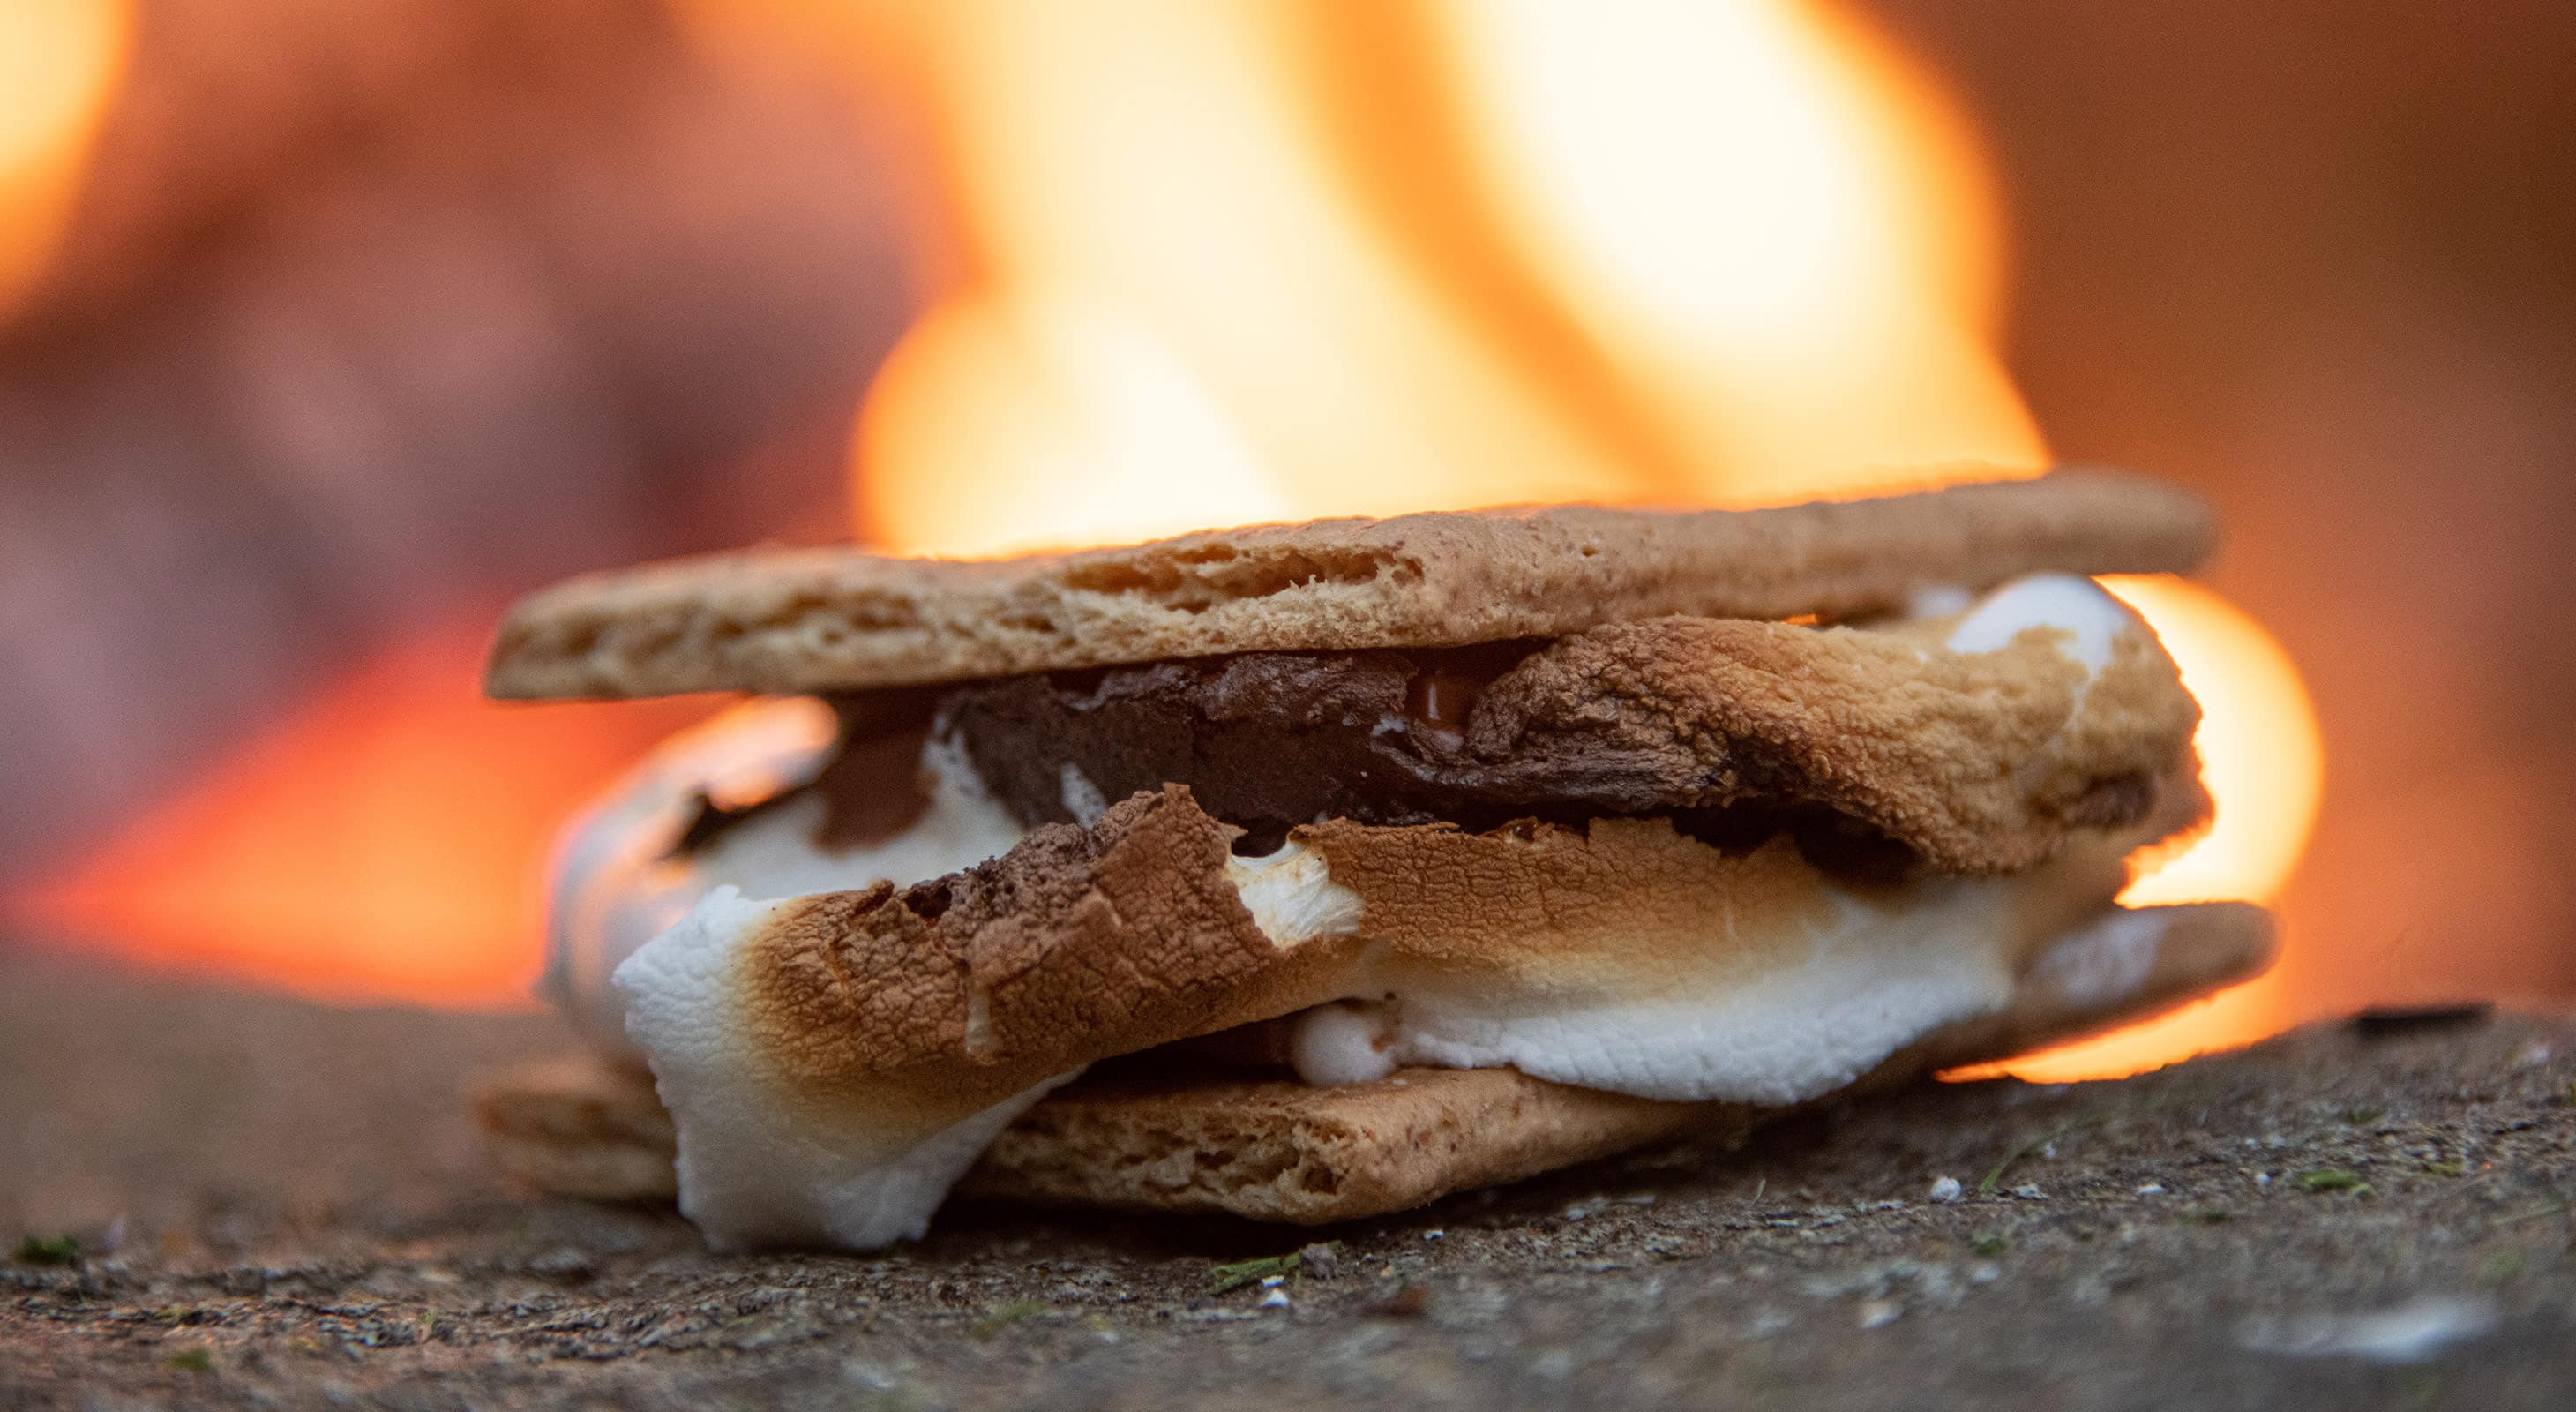 Cooked S'more at our cabin rentals near Starved Rock Park